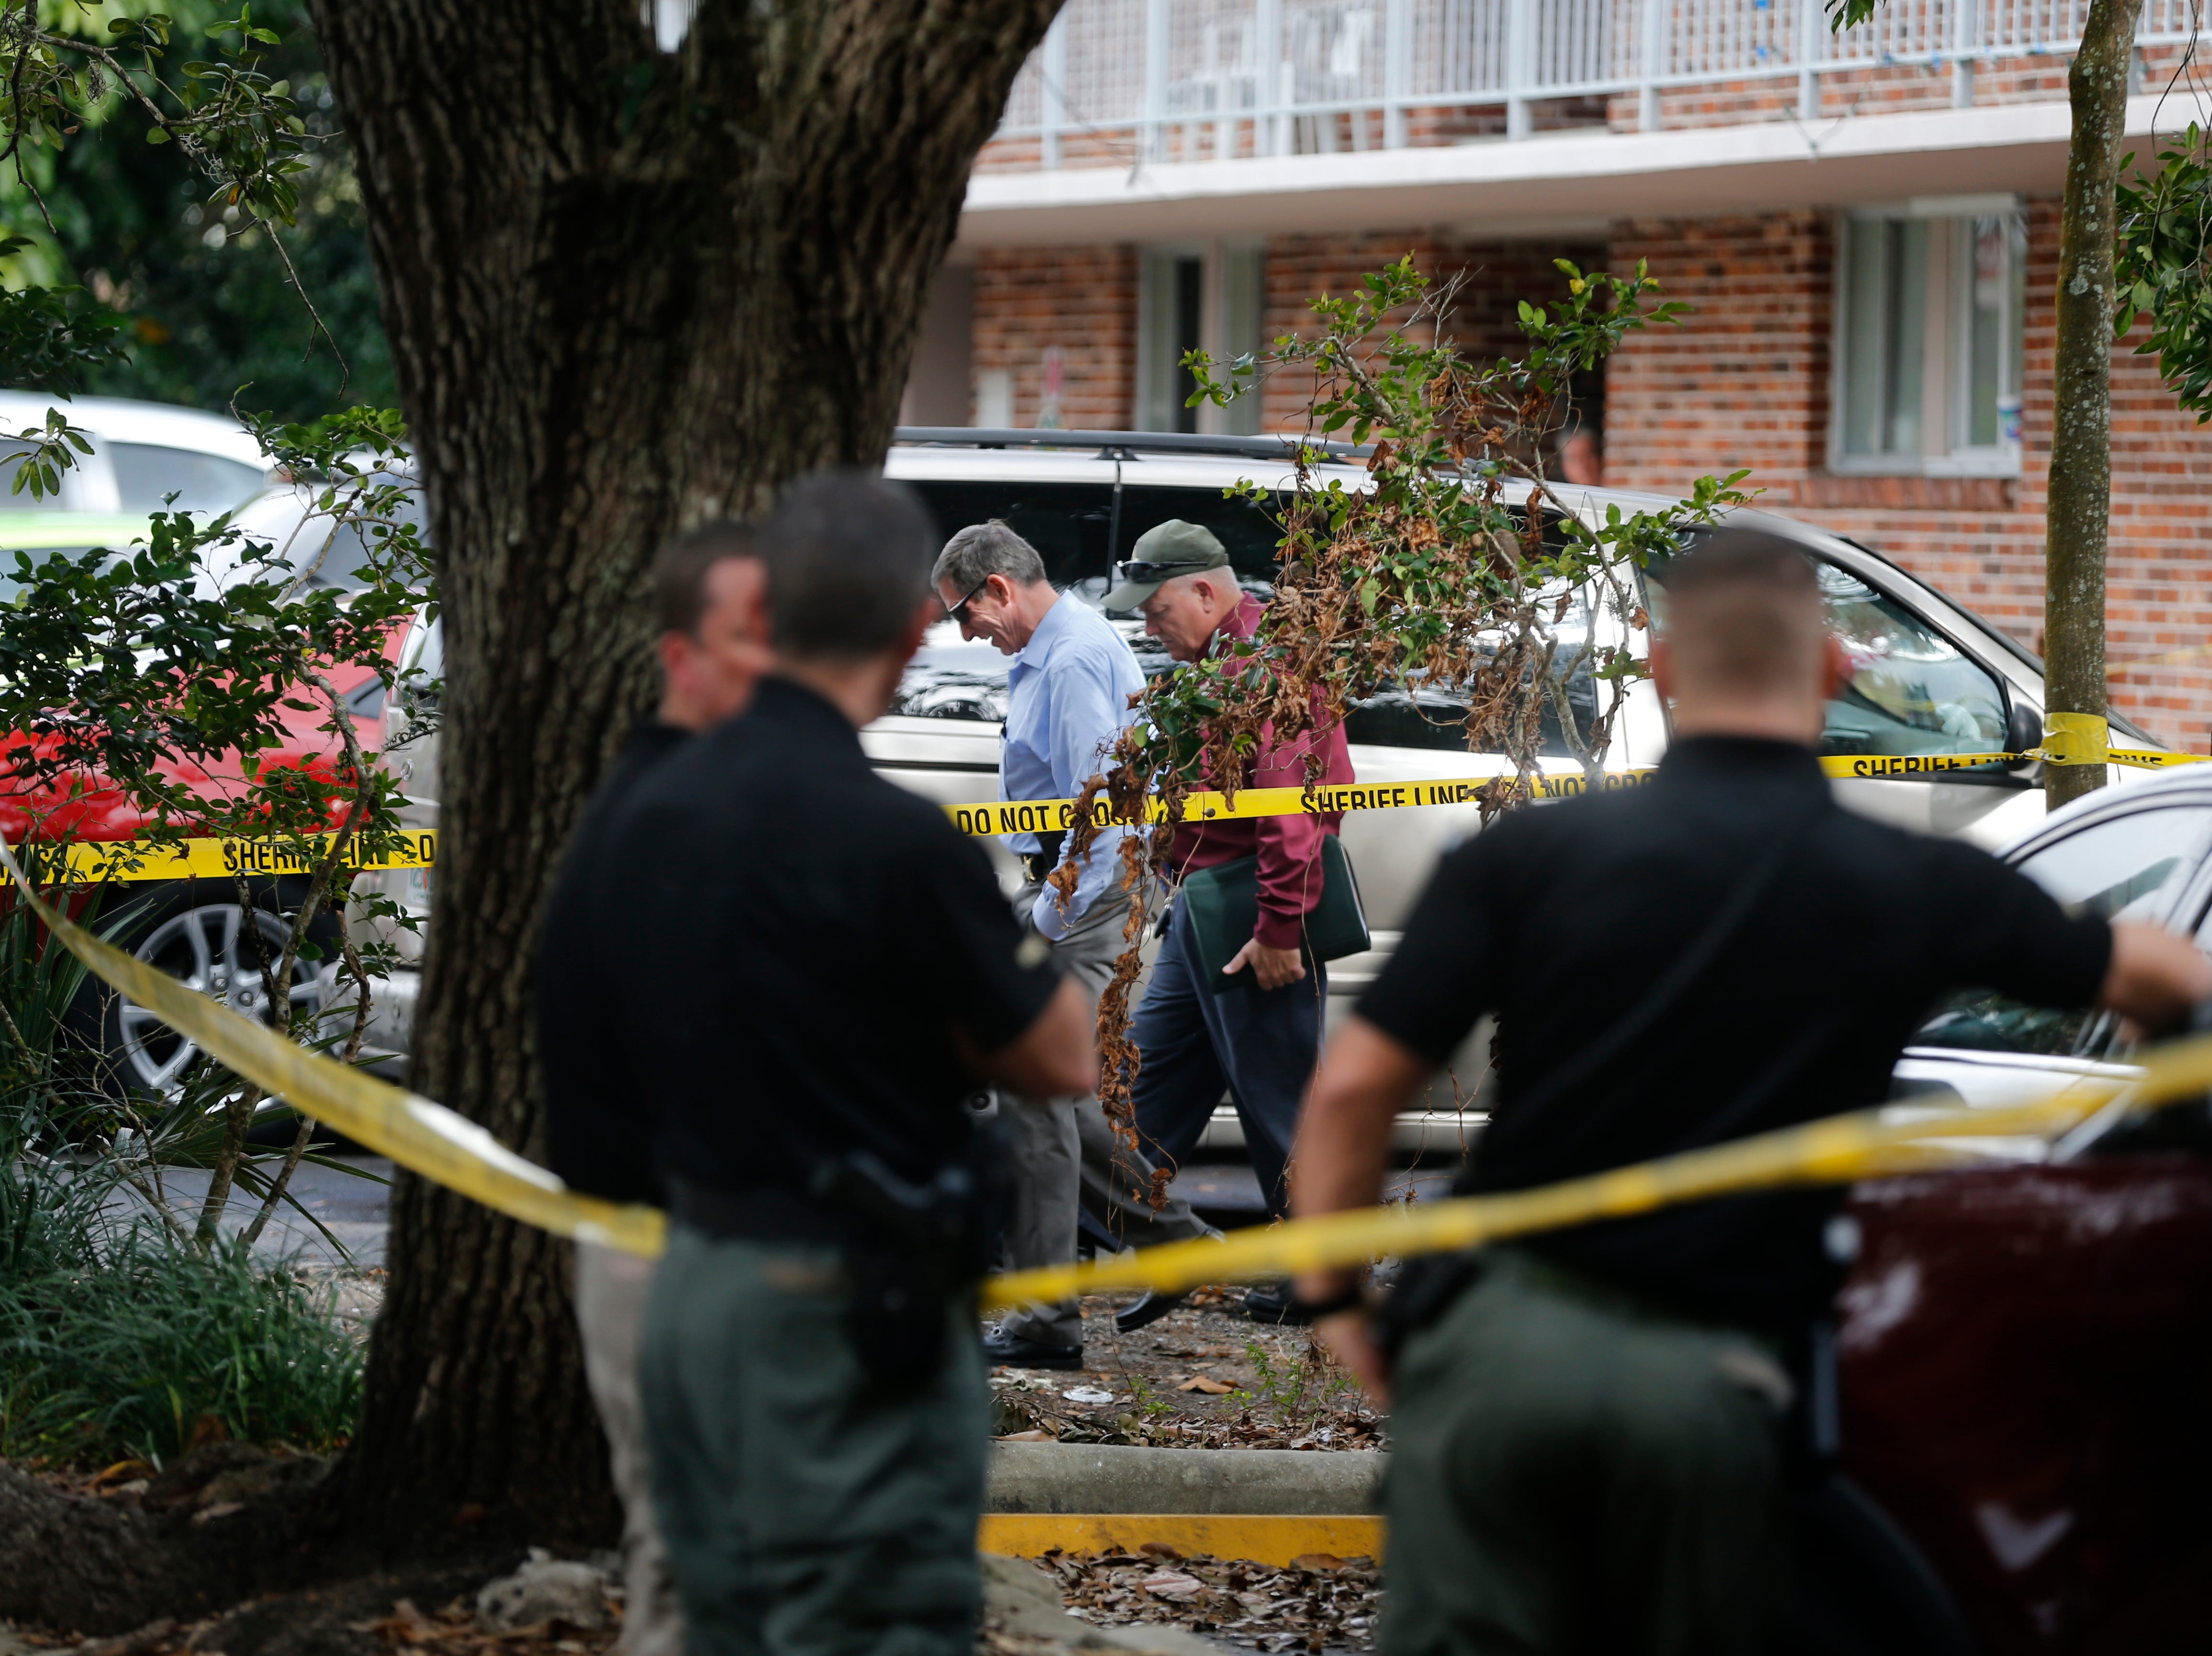 Detectives with the Collier County Sheriff's Office investigate the scene of a homicide, Thursday, Jan. 3, 2019 at a condominium complex in the 4000 block of Golden Gate Parkway near Collier Boulevard.